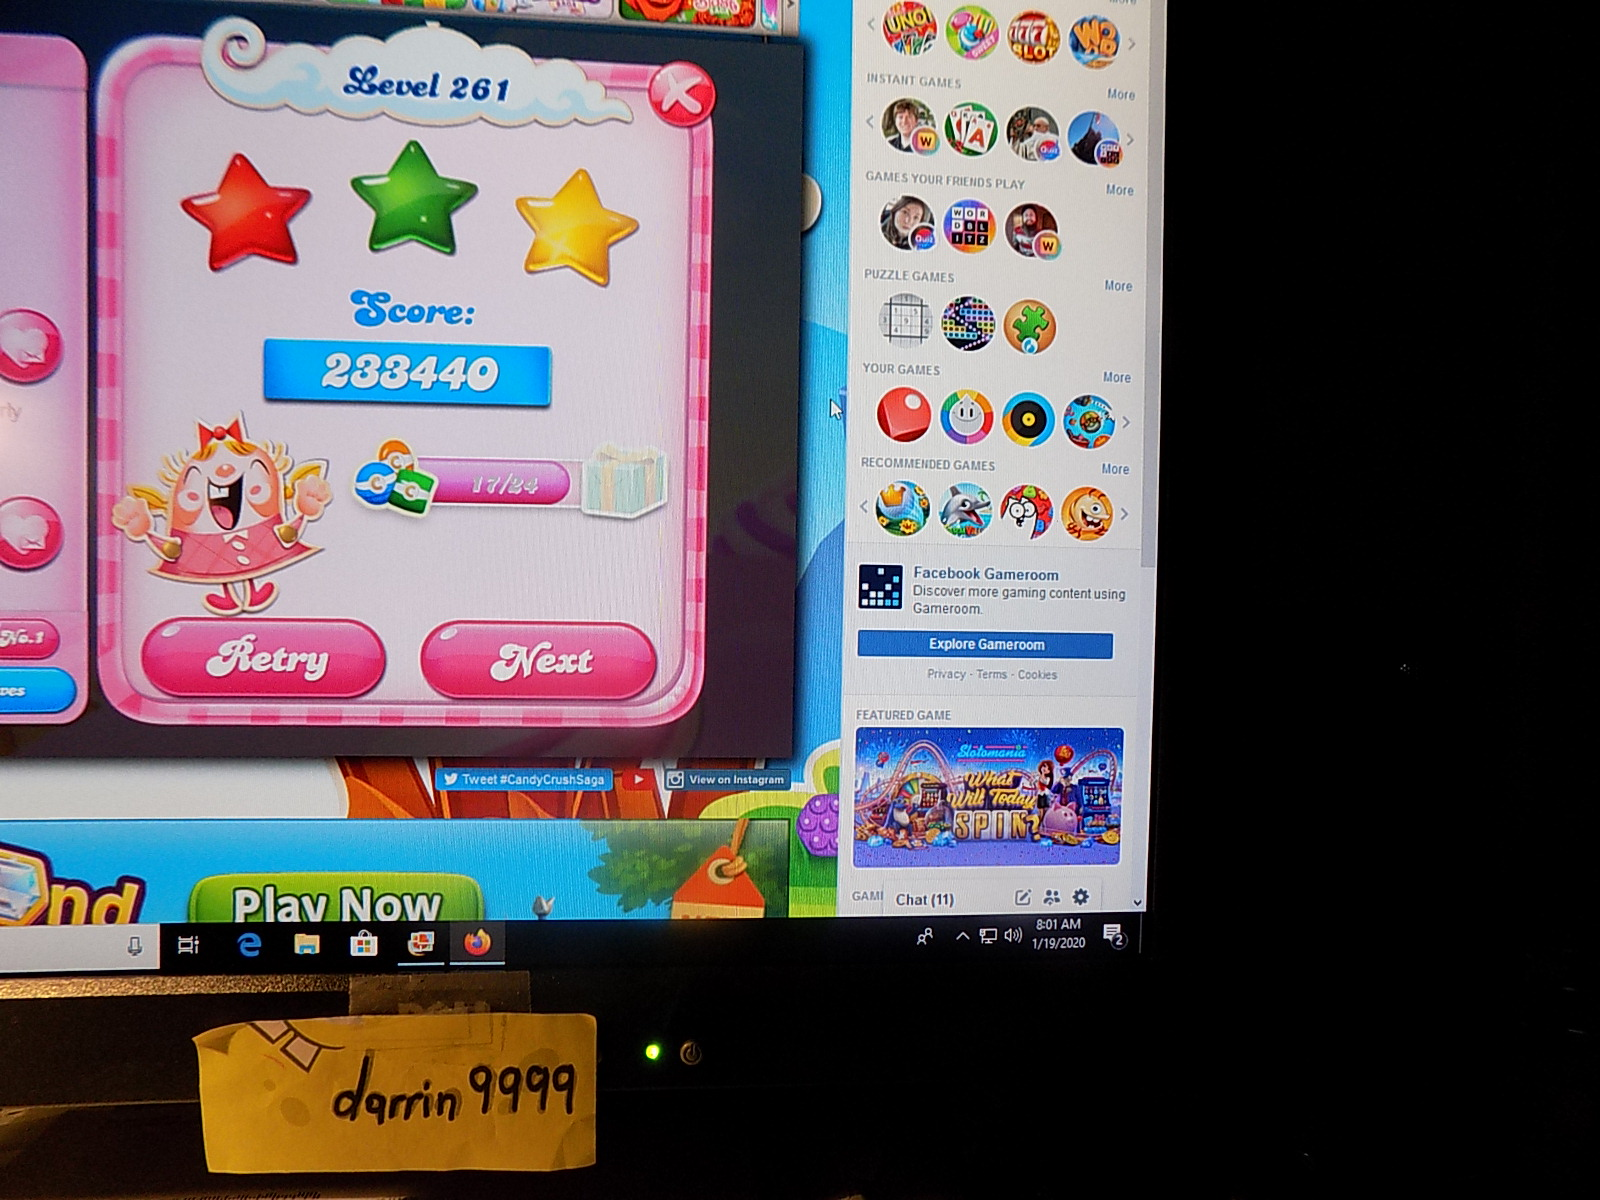 darrin9999: Candy Crush Saga: Level 261 (Web) 233,440 points on 2020-01-19 11:39:45